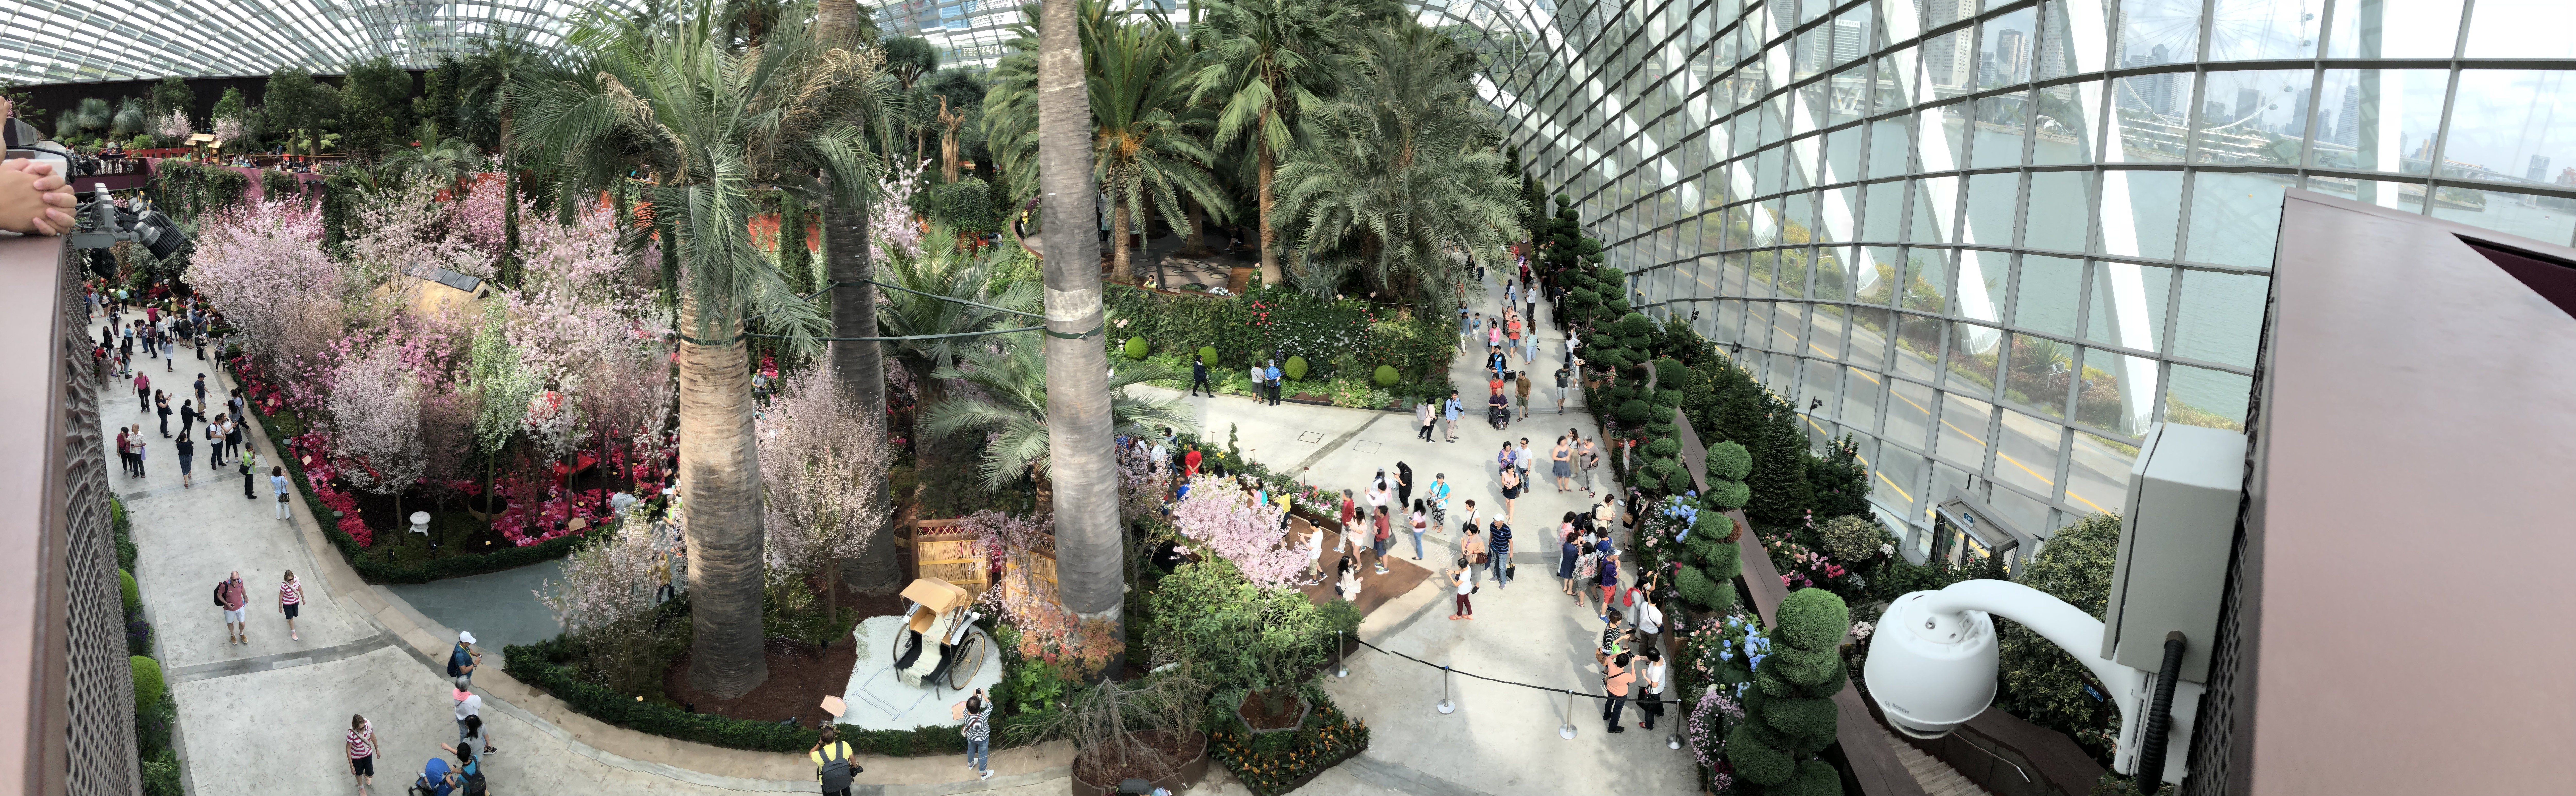 IMG_0471_pano_flower dome